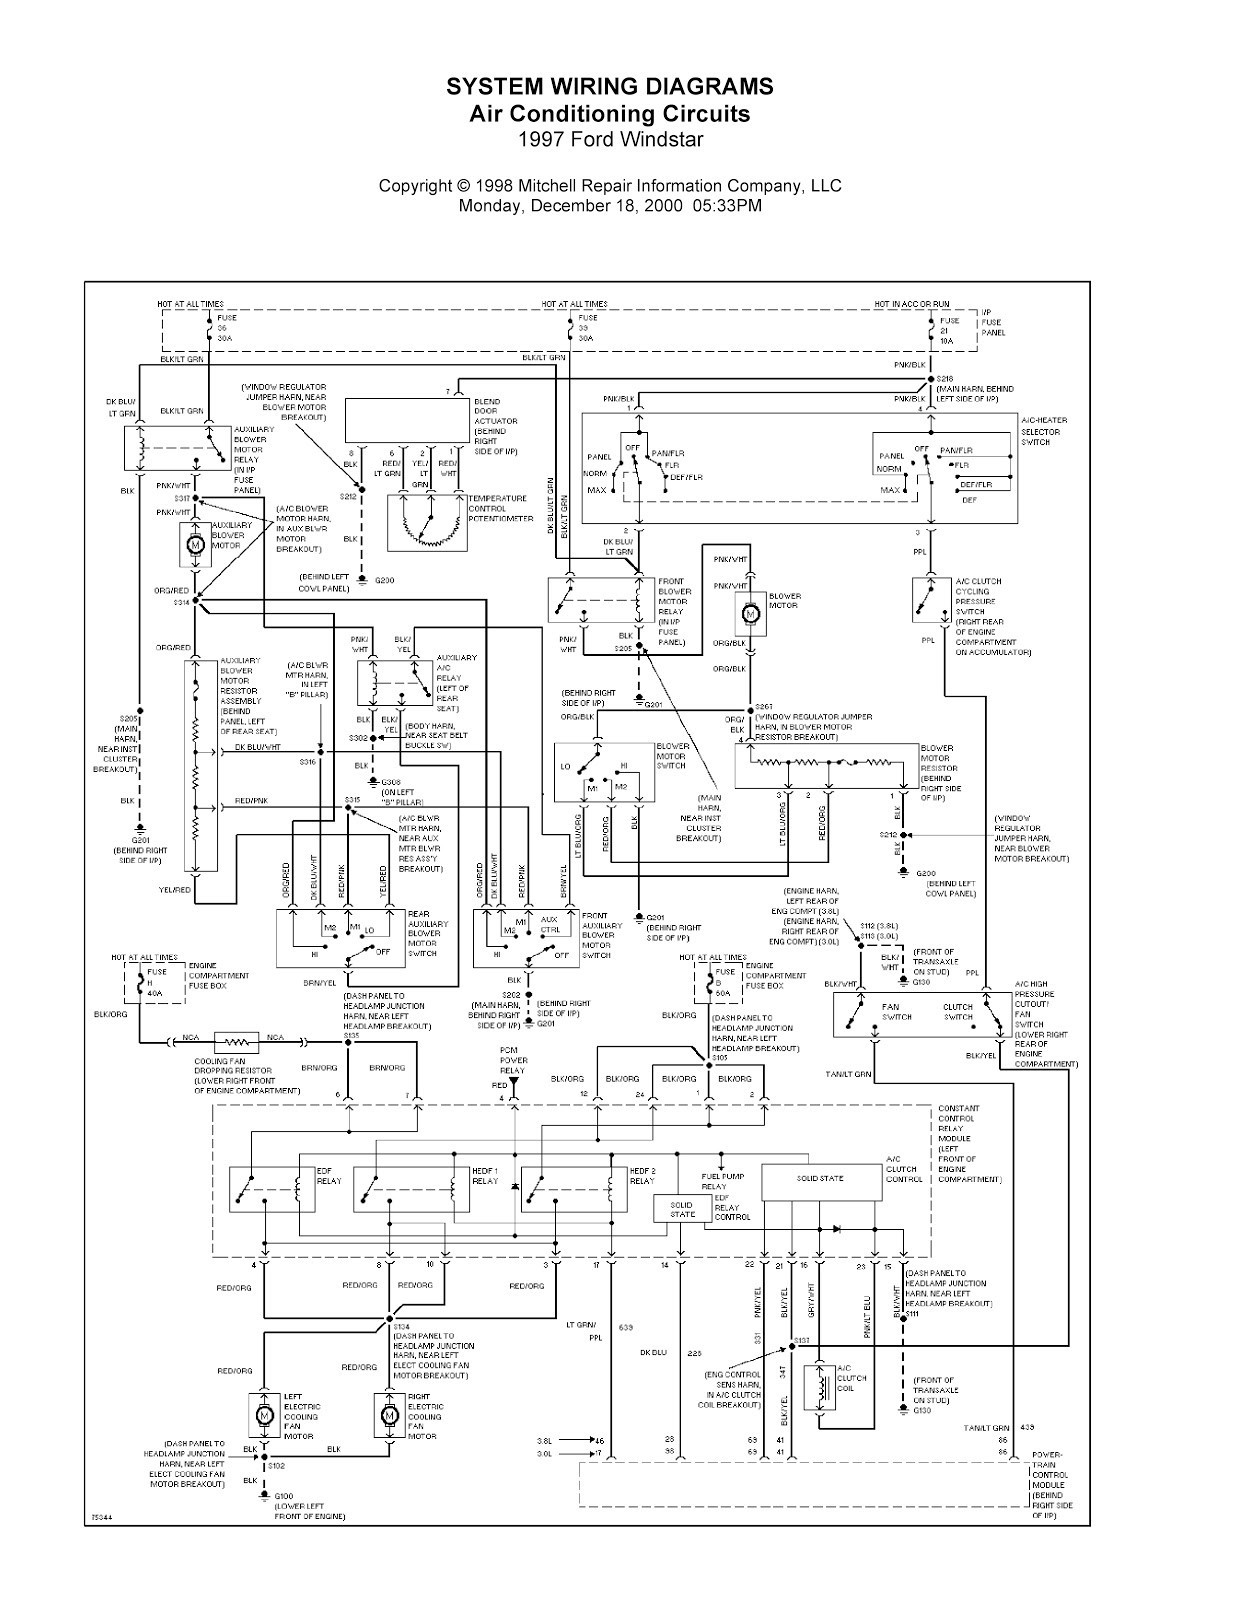 expedition engine diagram wiring library 2000 expedition fuel tank ford expedition engine diagram ford expedition fuel pump jpg 1236x1600 ford expedition engine diagram